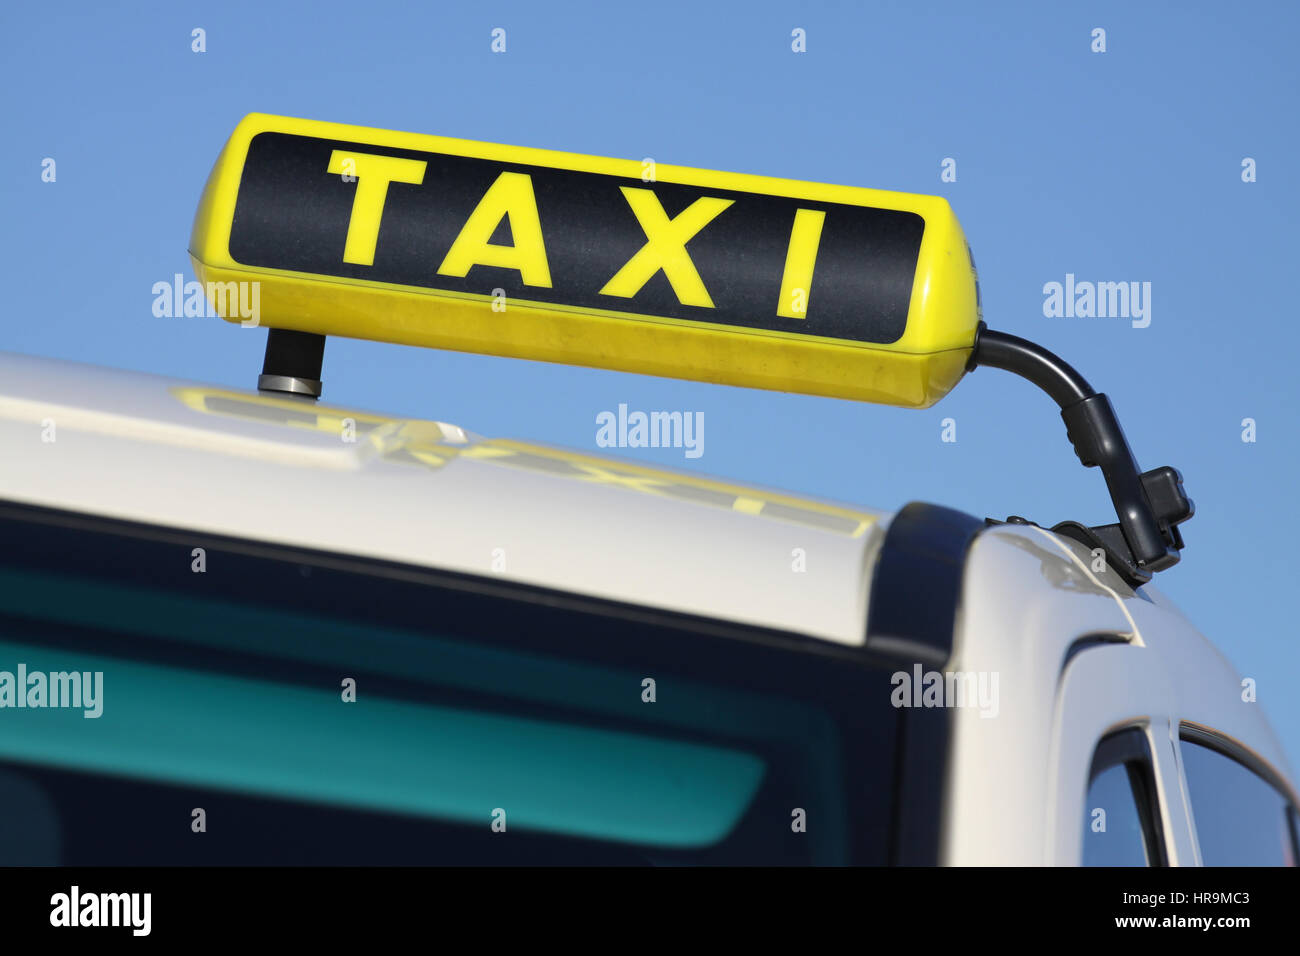 German taxi sign against blue sky - Stock Image